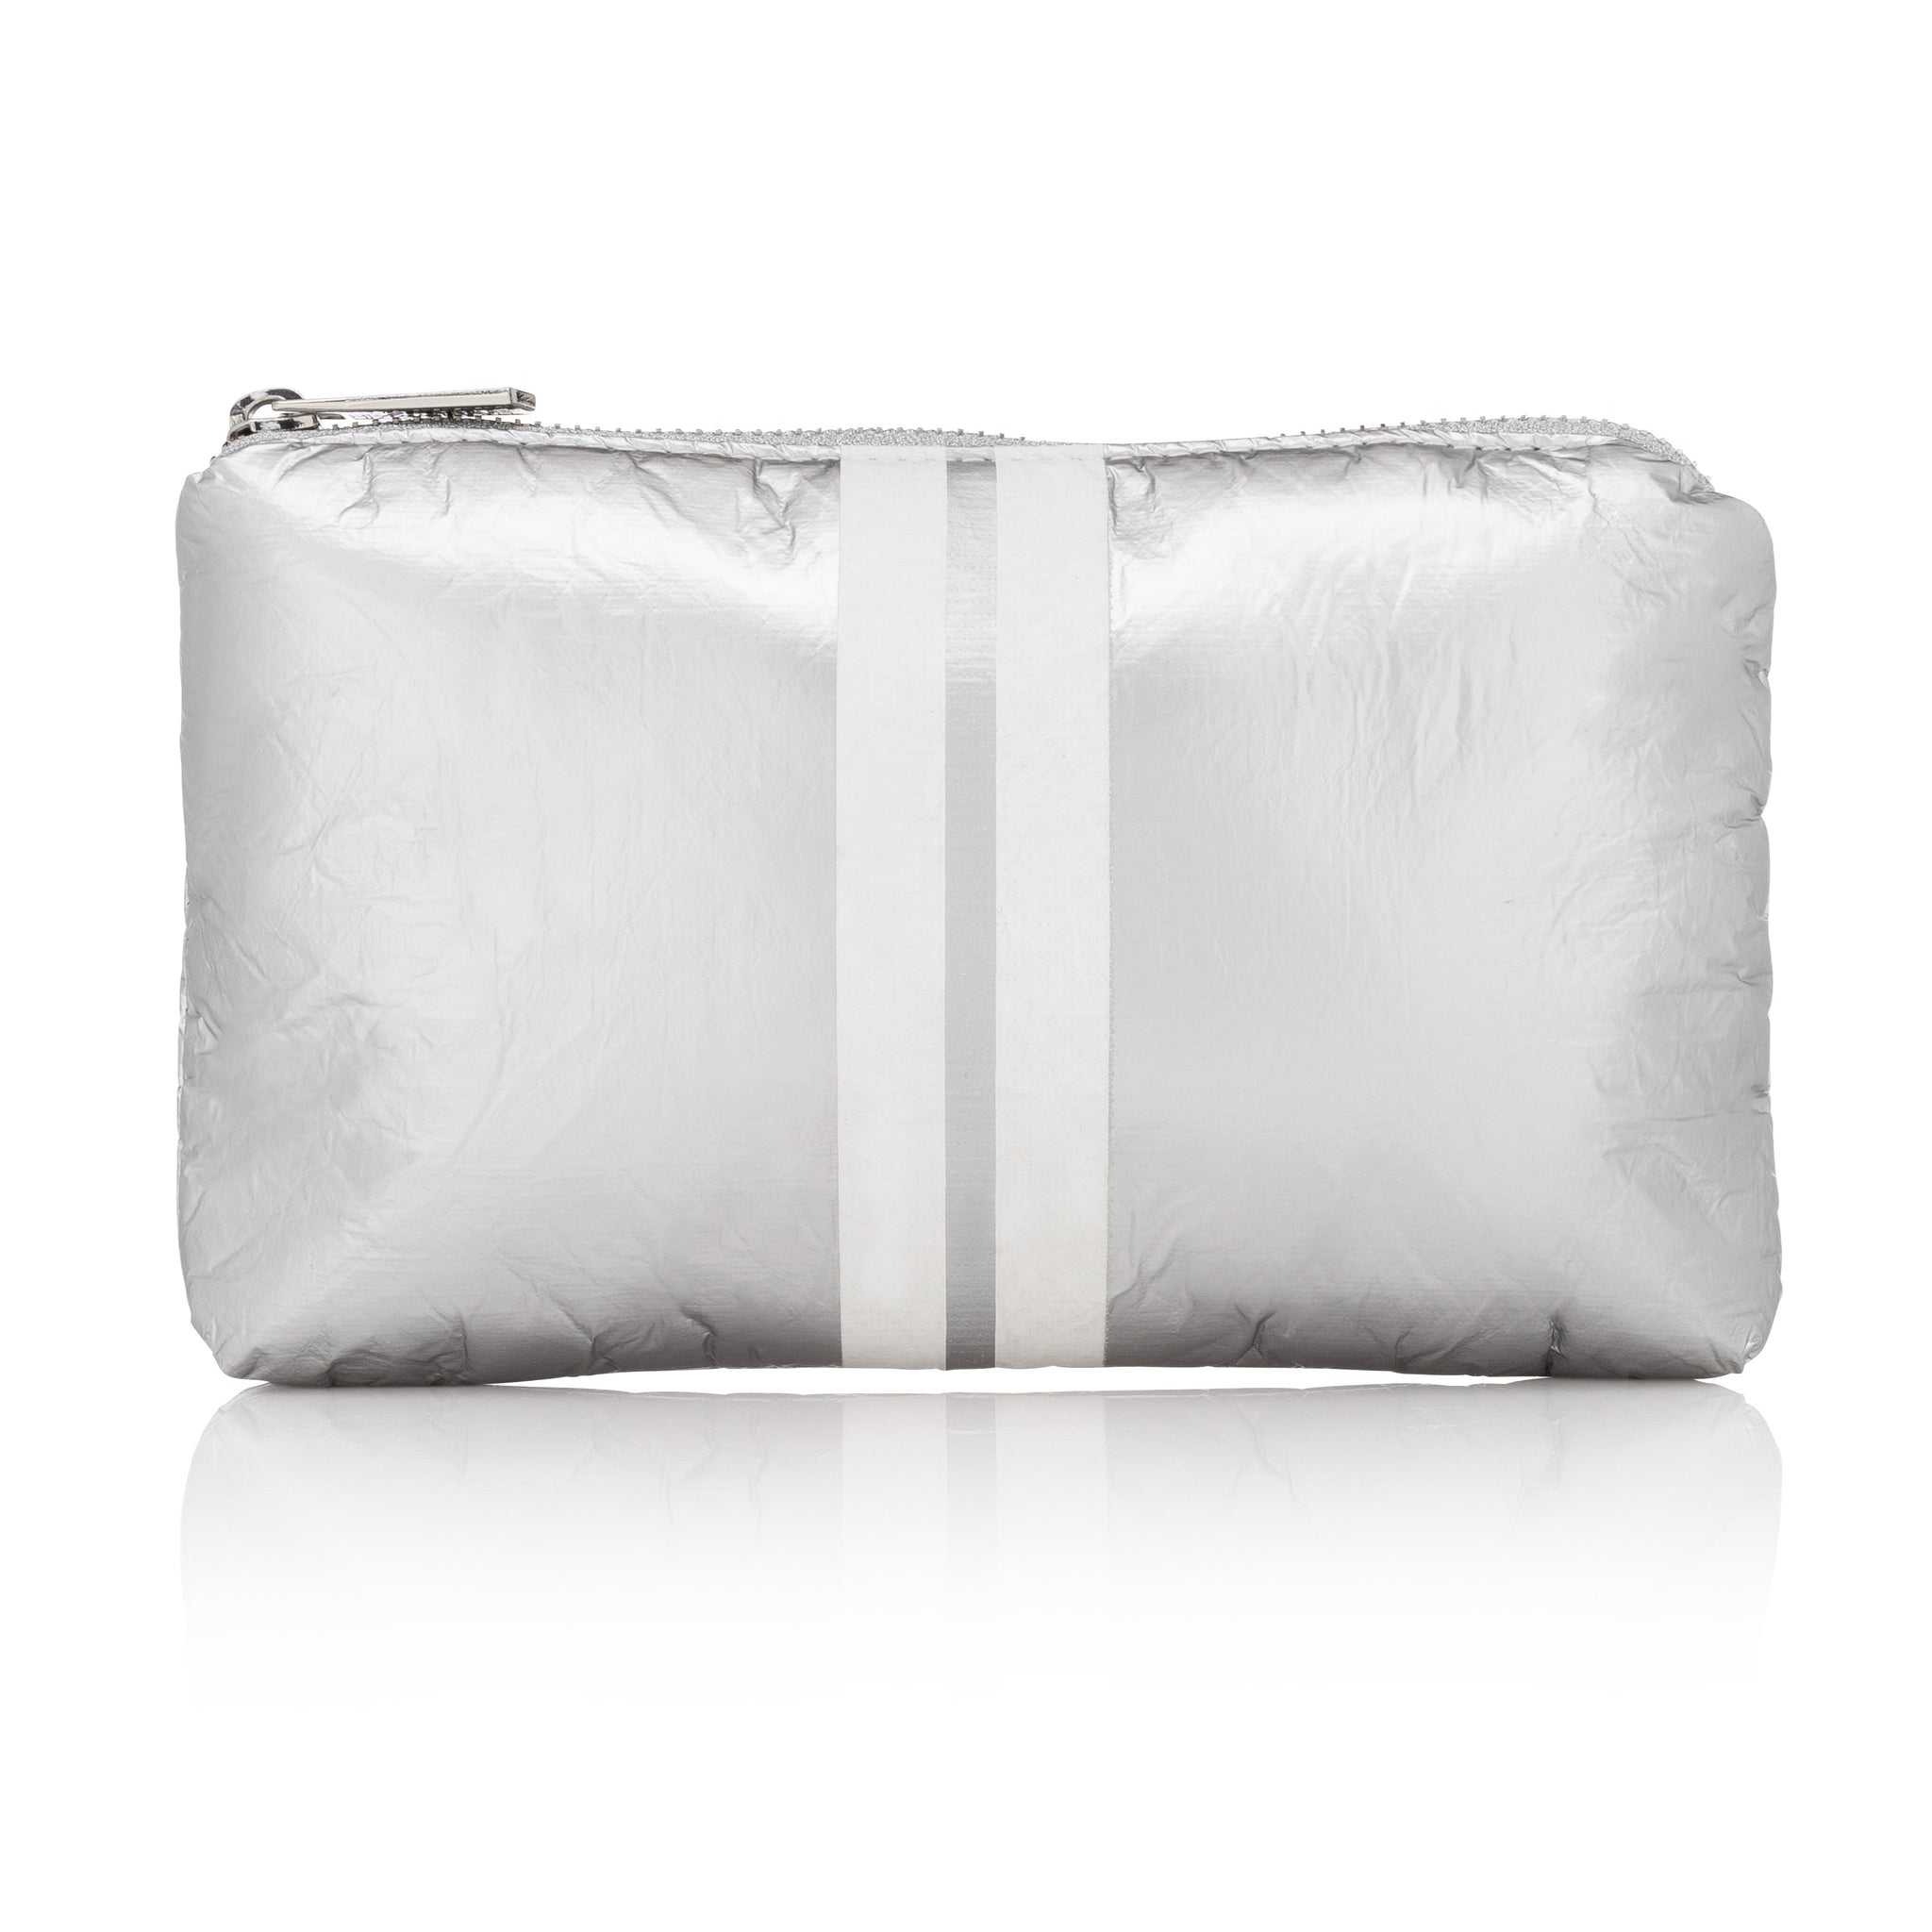 Cute Travel Bag - Mini Padded Pack - Metallic Silver Collection with Shimmer White Stripes